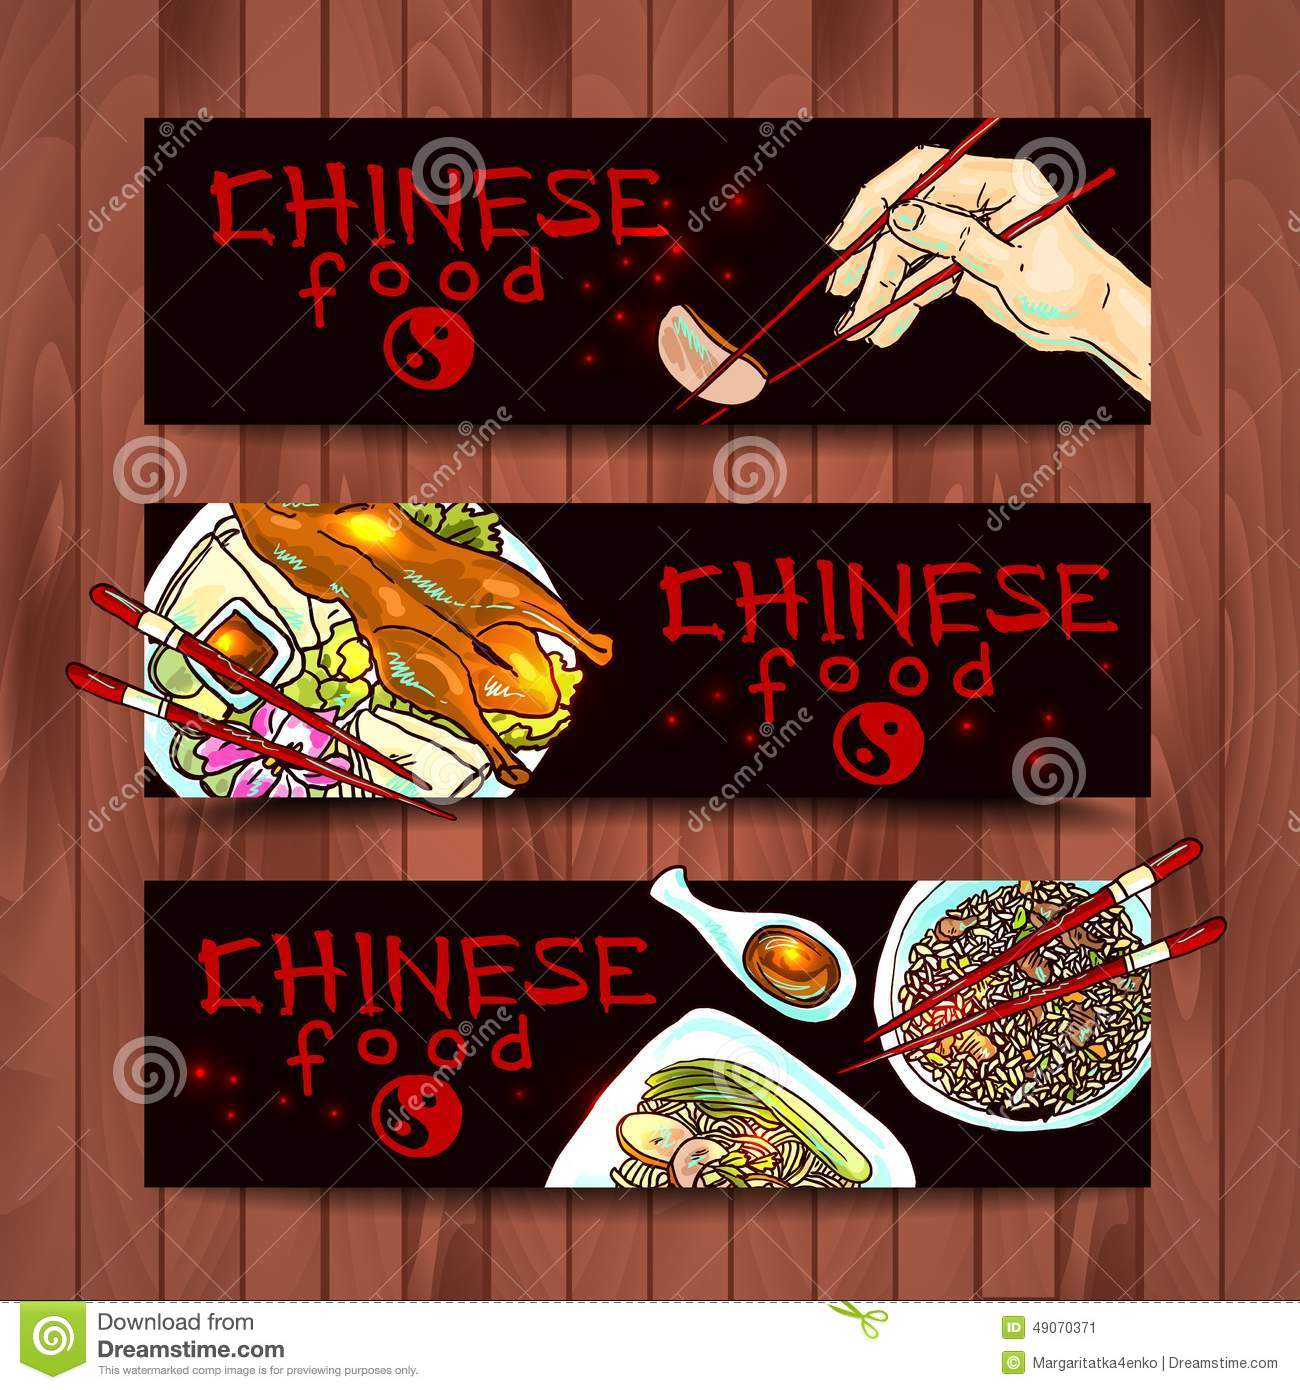 chinese food banner design - photo #6